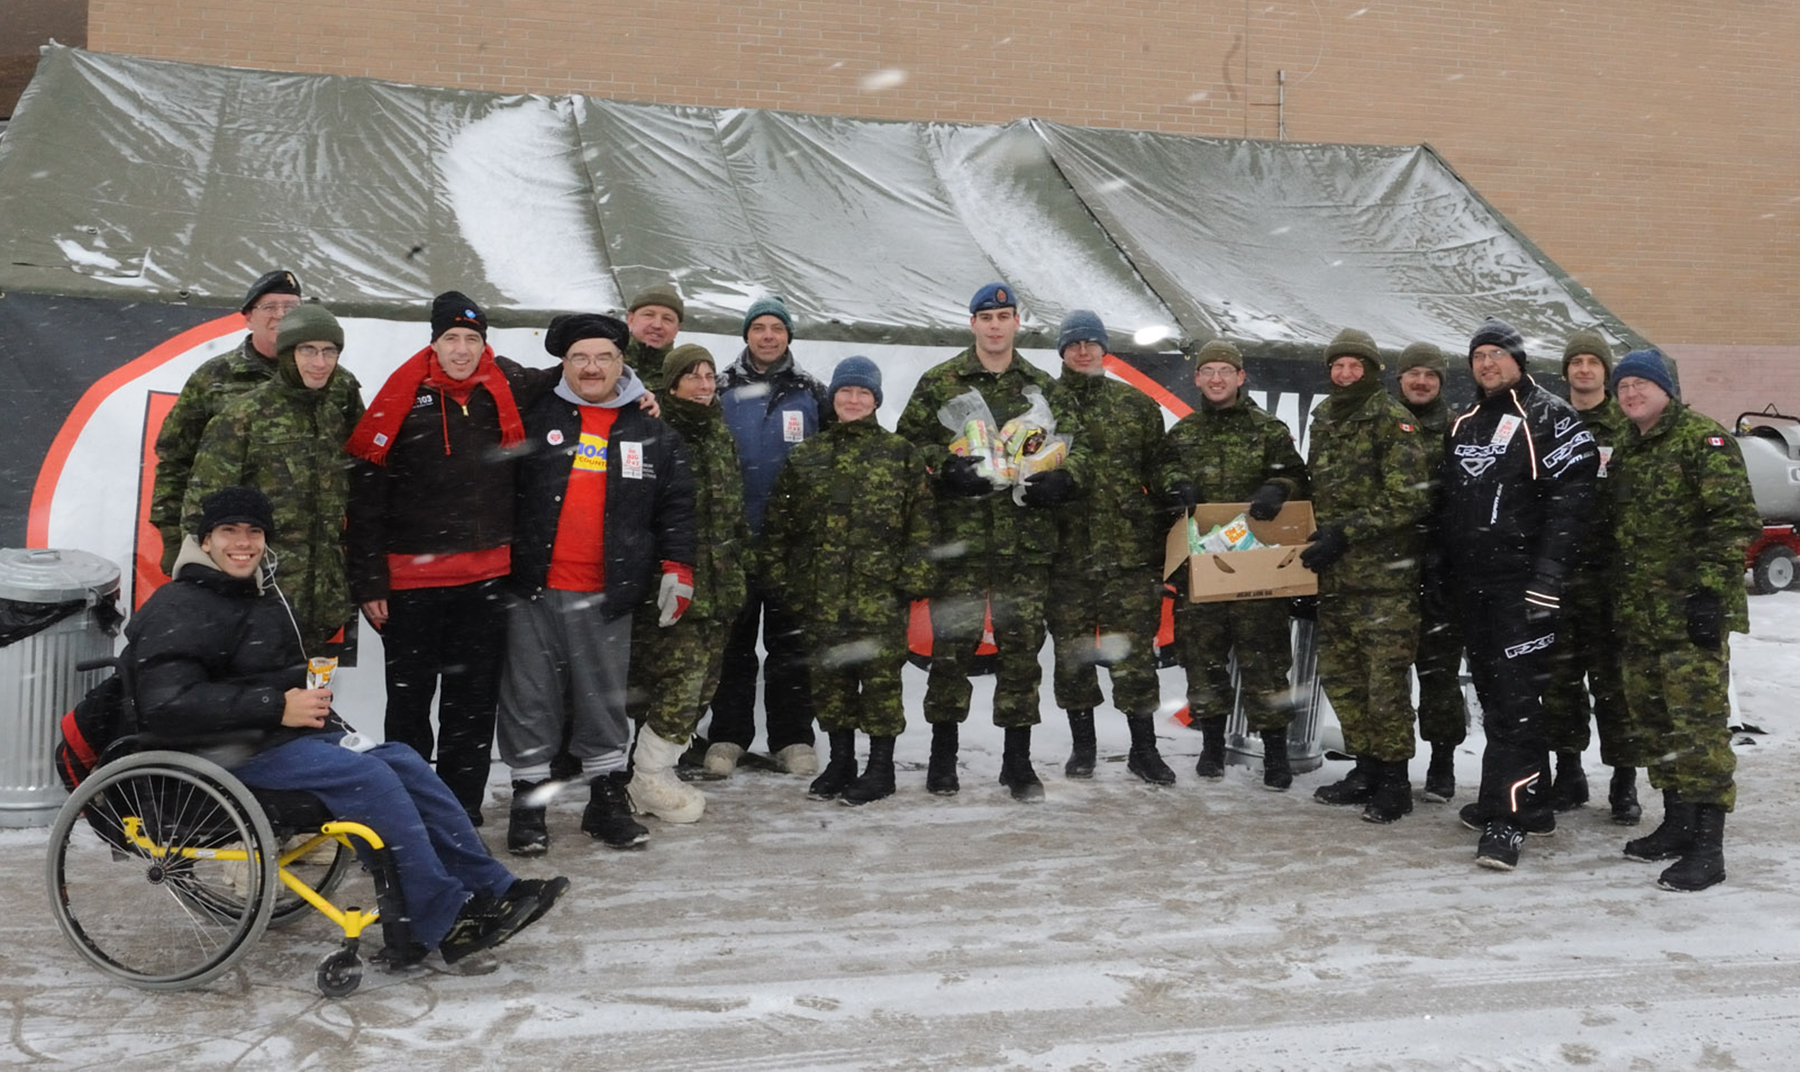 On December 5, 2008, members of 17 Wing Winnipeg Logistics and Engineers helped out with One Big Day for Christmas food collections in collaboration with Hot 103 and QX104.1. PHOTO: Corporal Colin Aitken, WG2008-0470-06